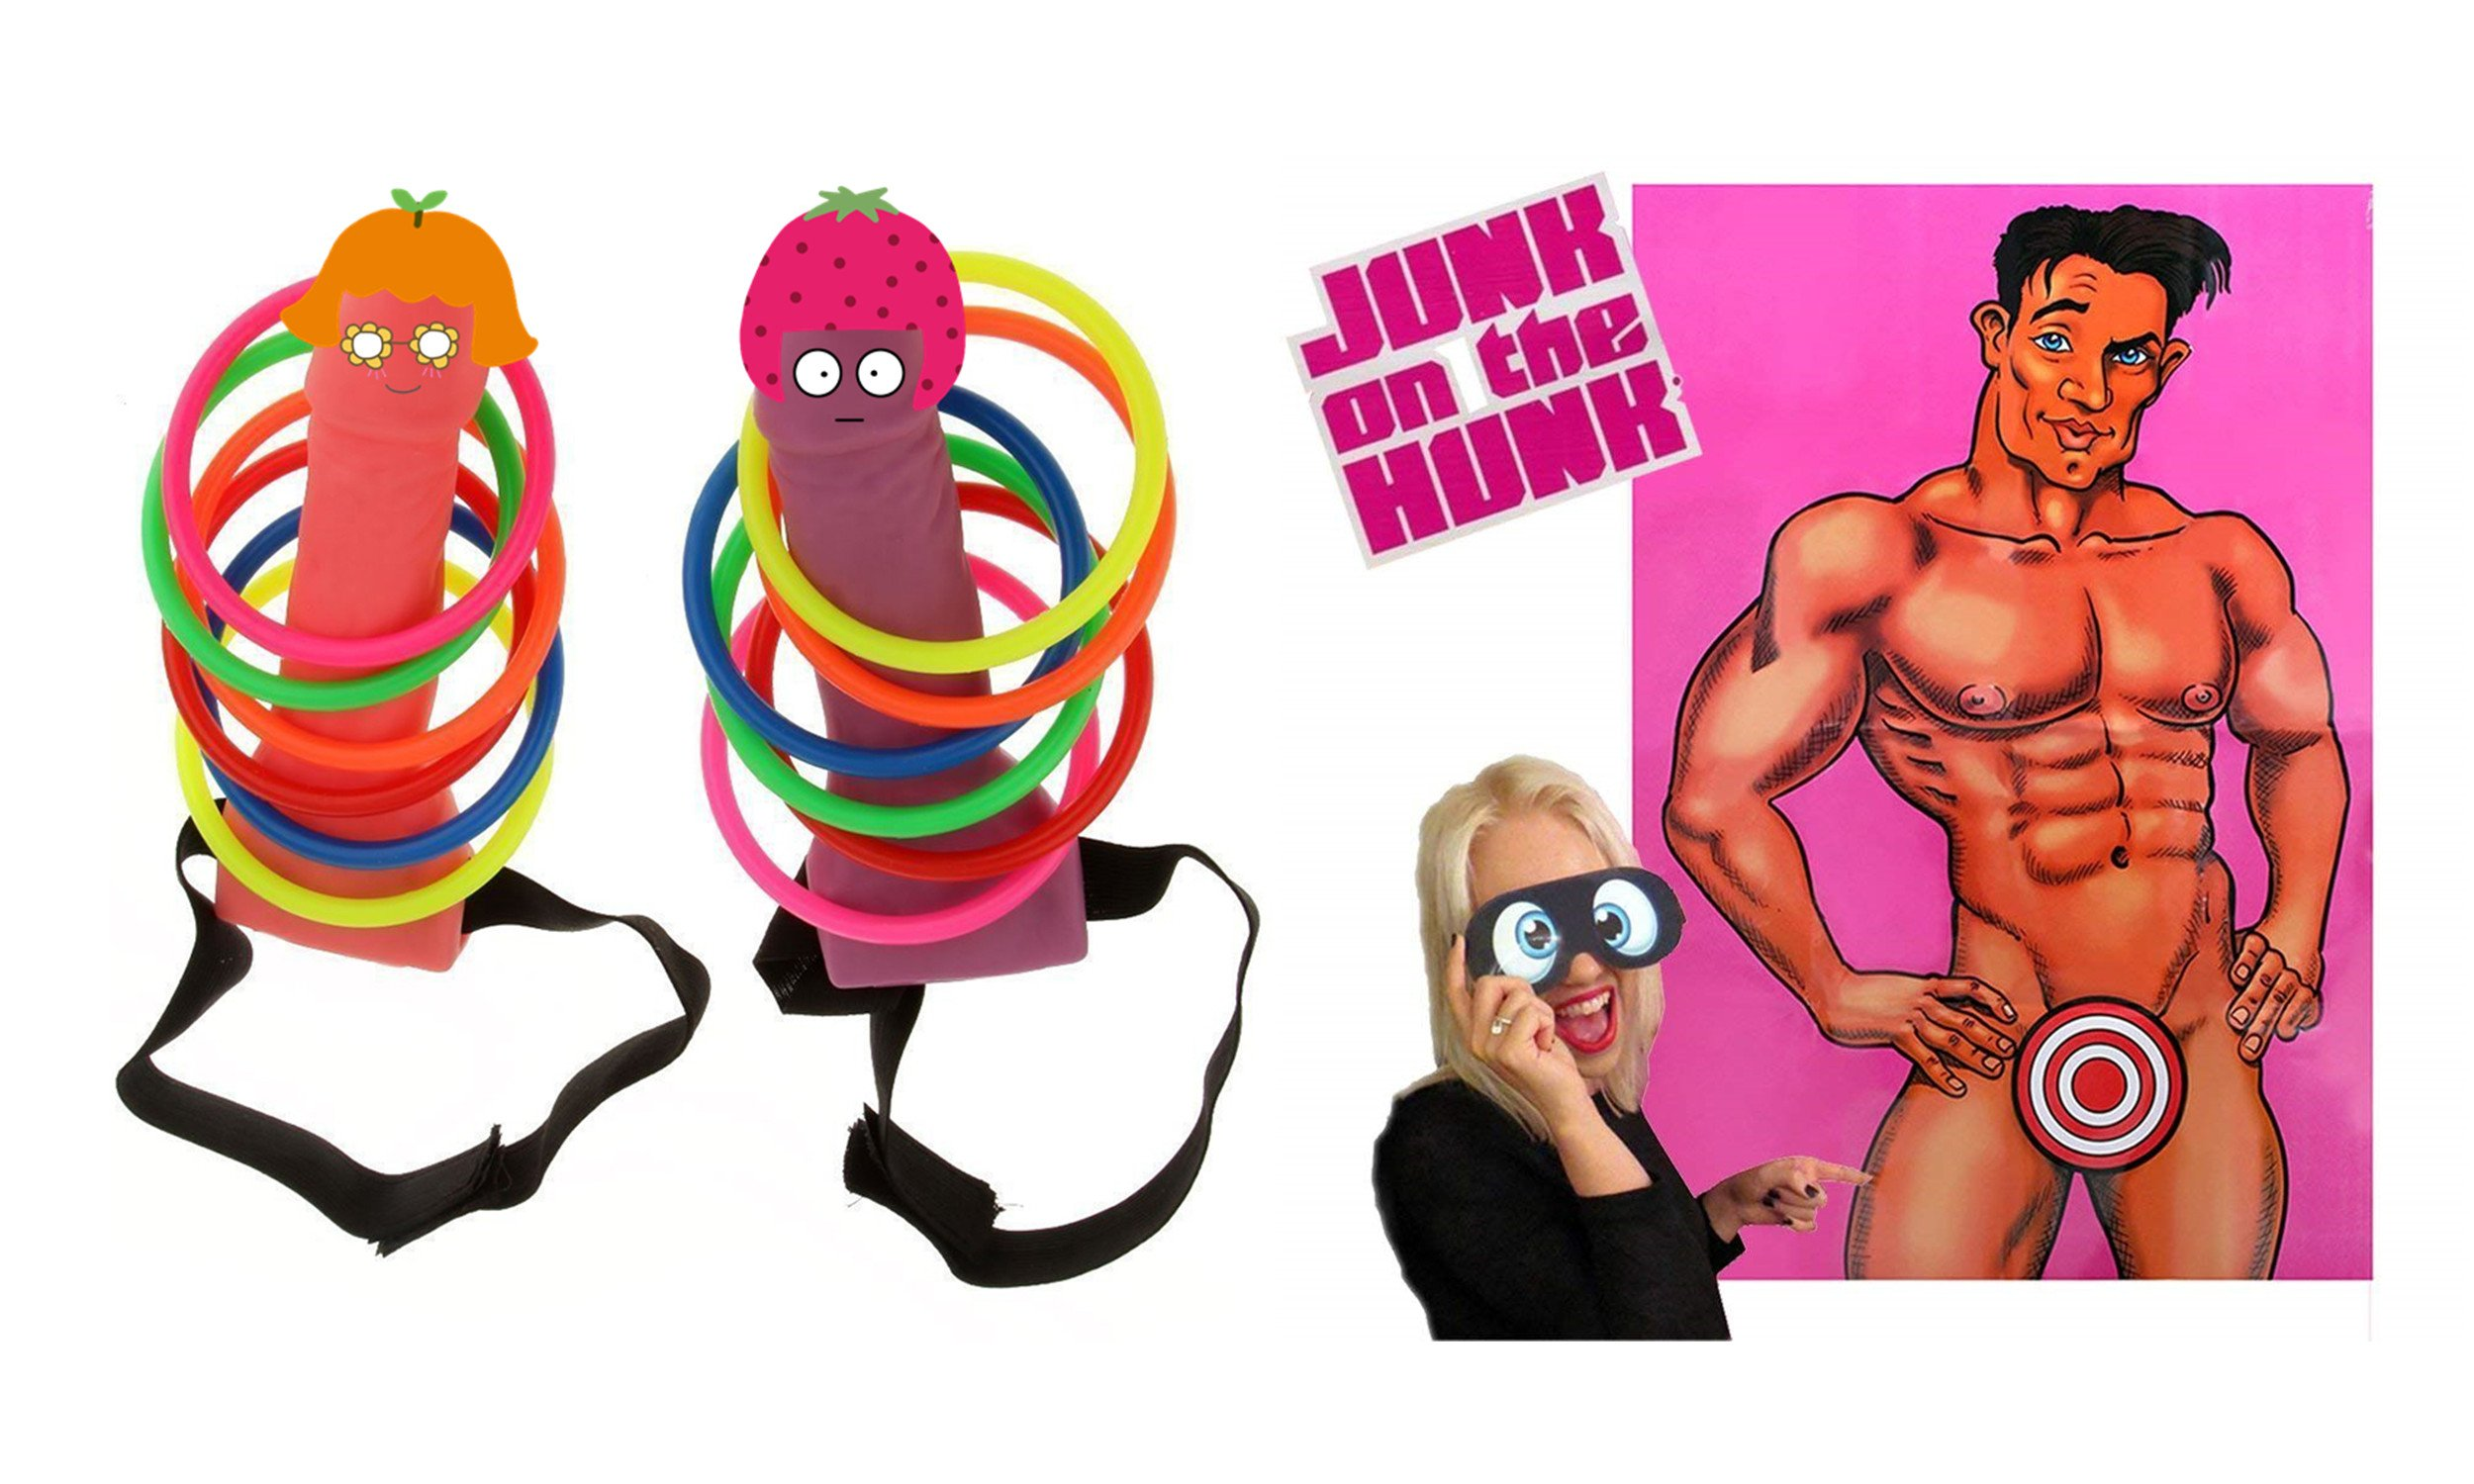 Bachelorette Party Games - Pin the Junk on the Hunk, Funny Ring Toss, Perfect for Bachelorette Party Decorations, Girls Night Out, 21st Birthday Party & Bridal Showers